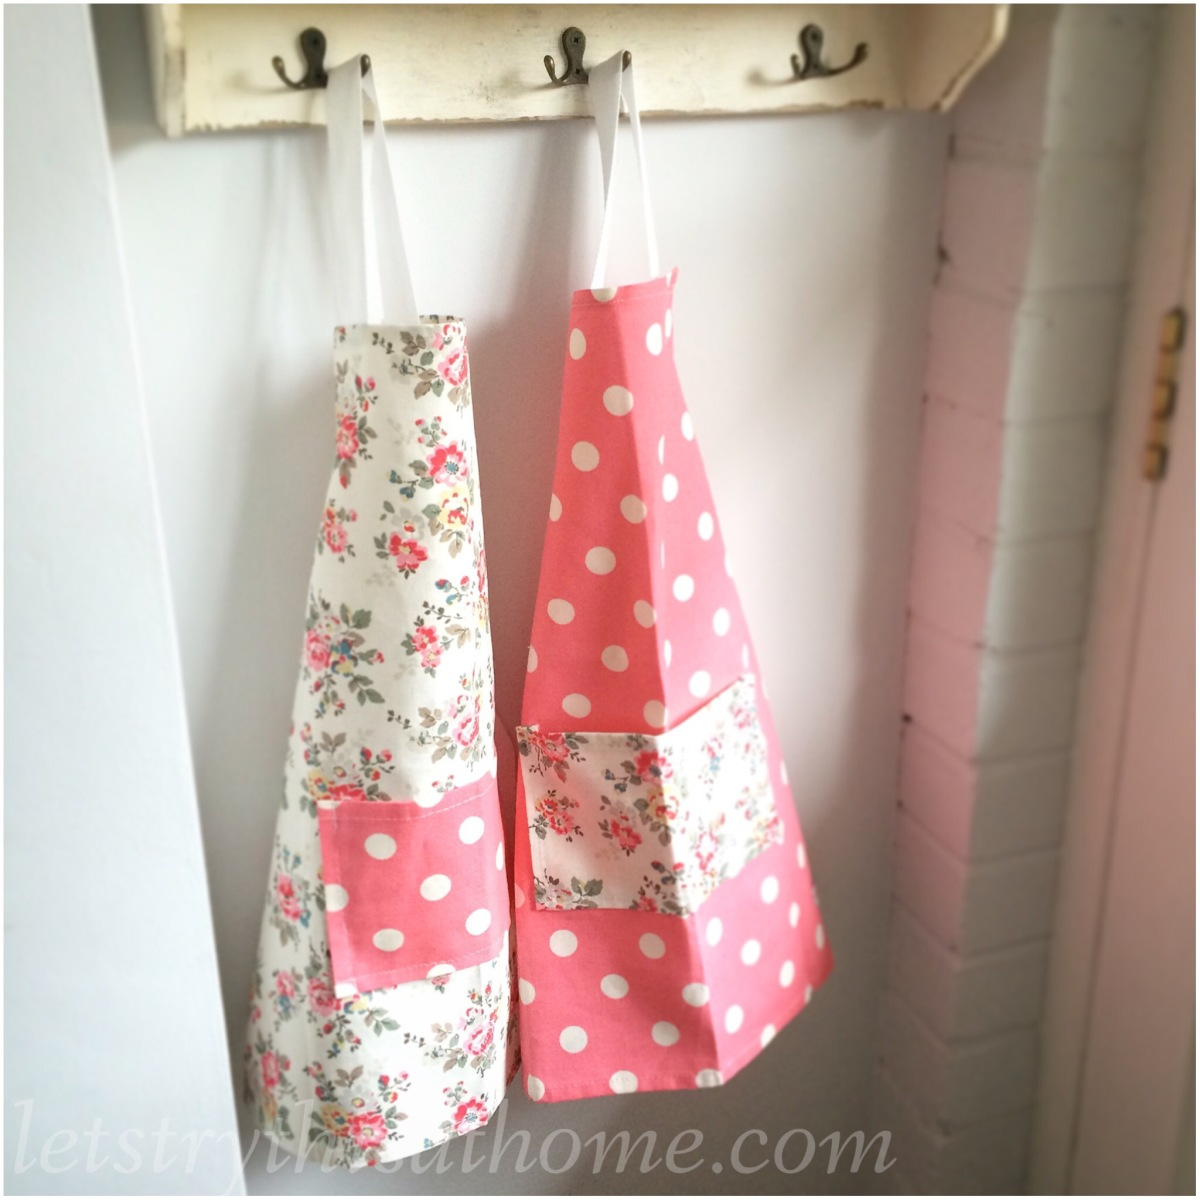 Home-made aprons